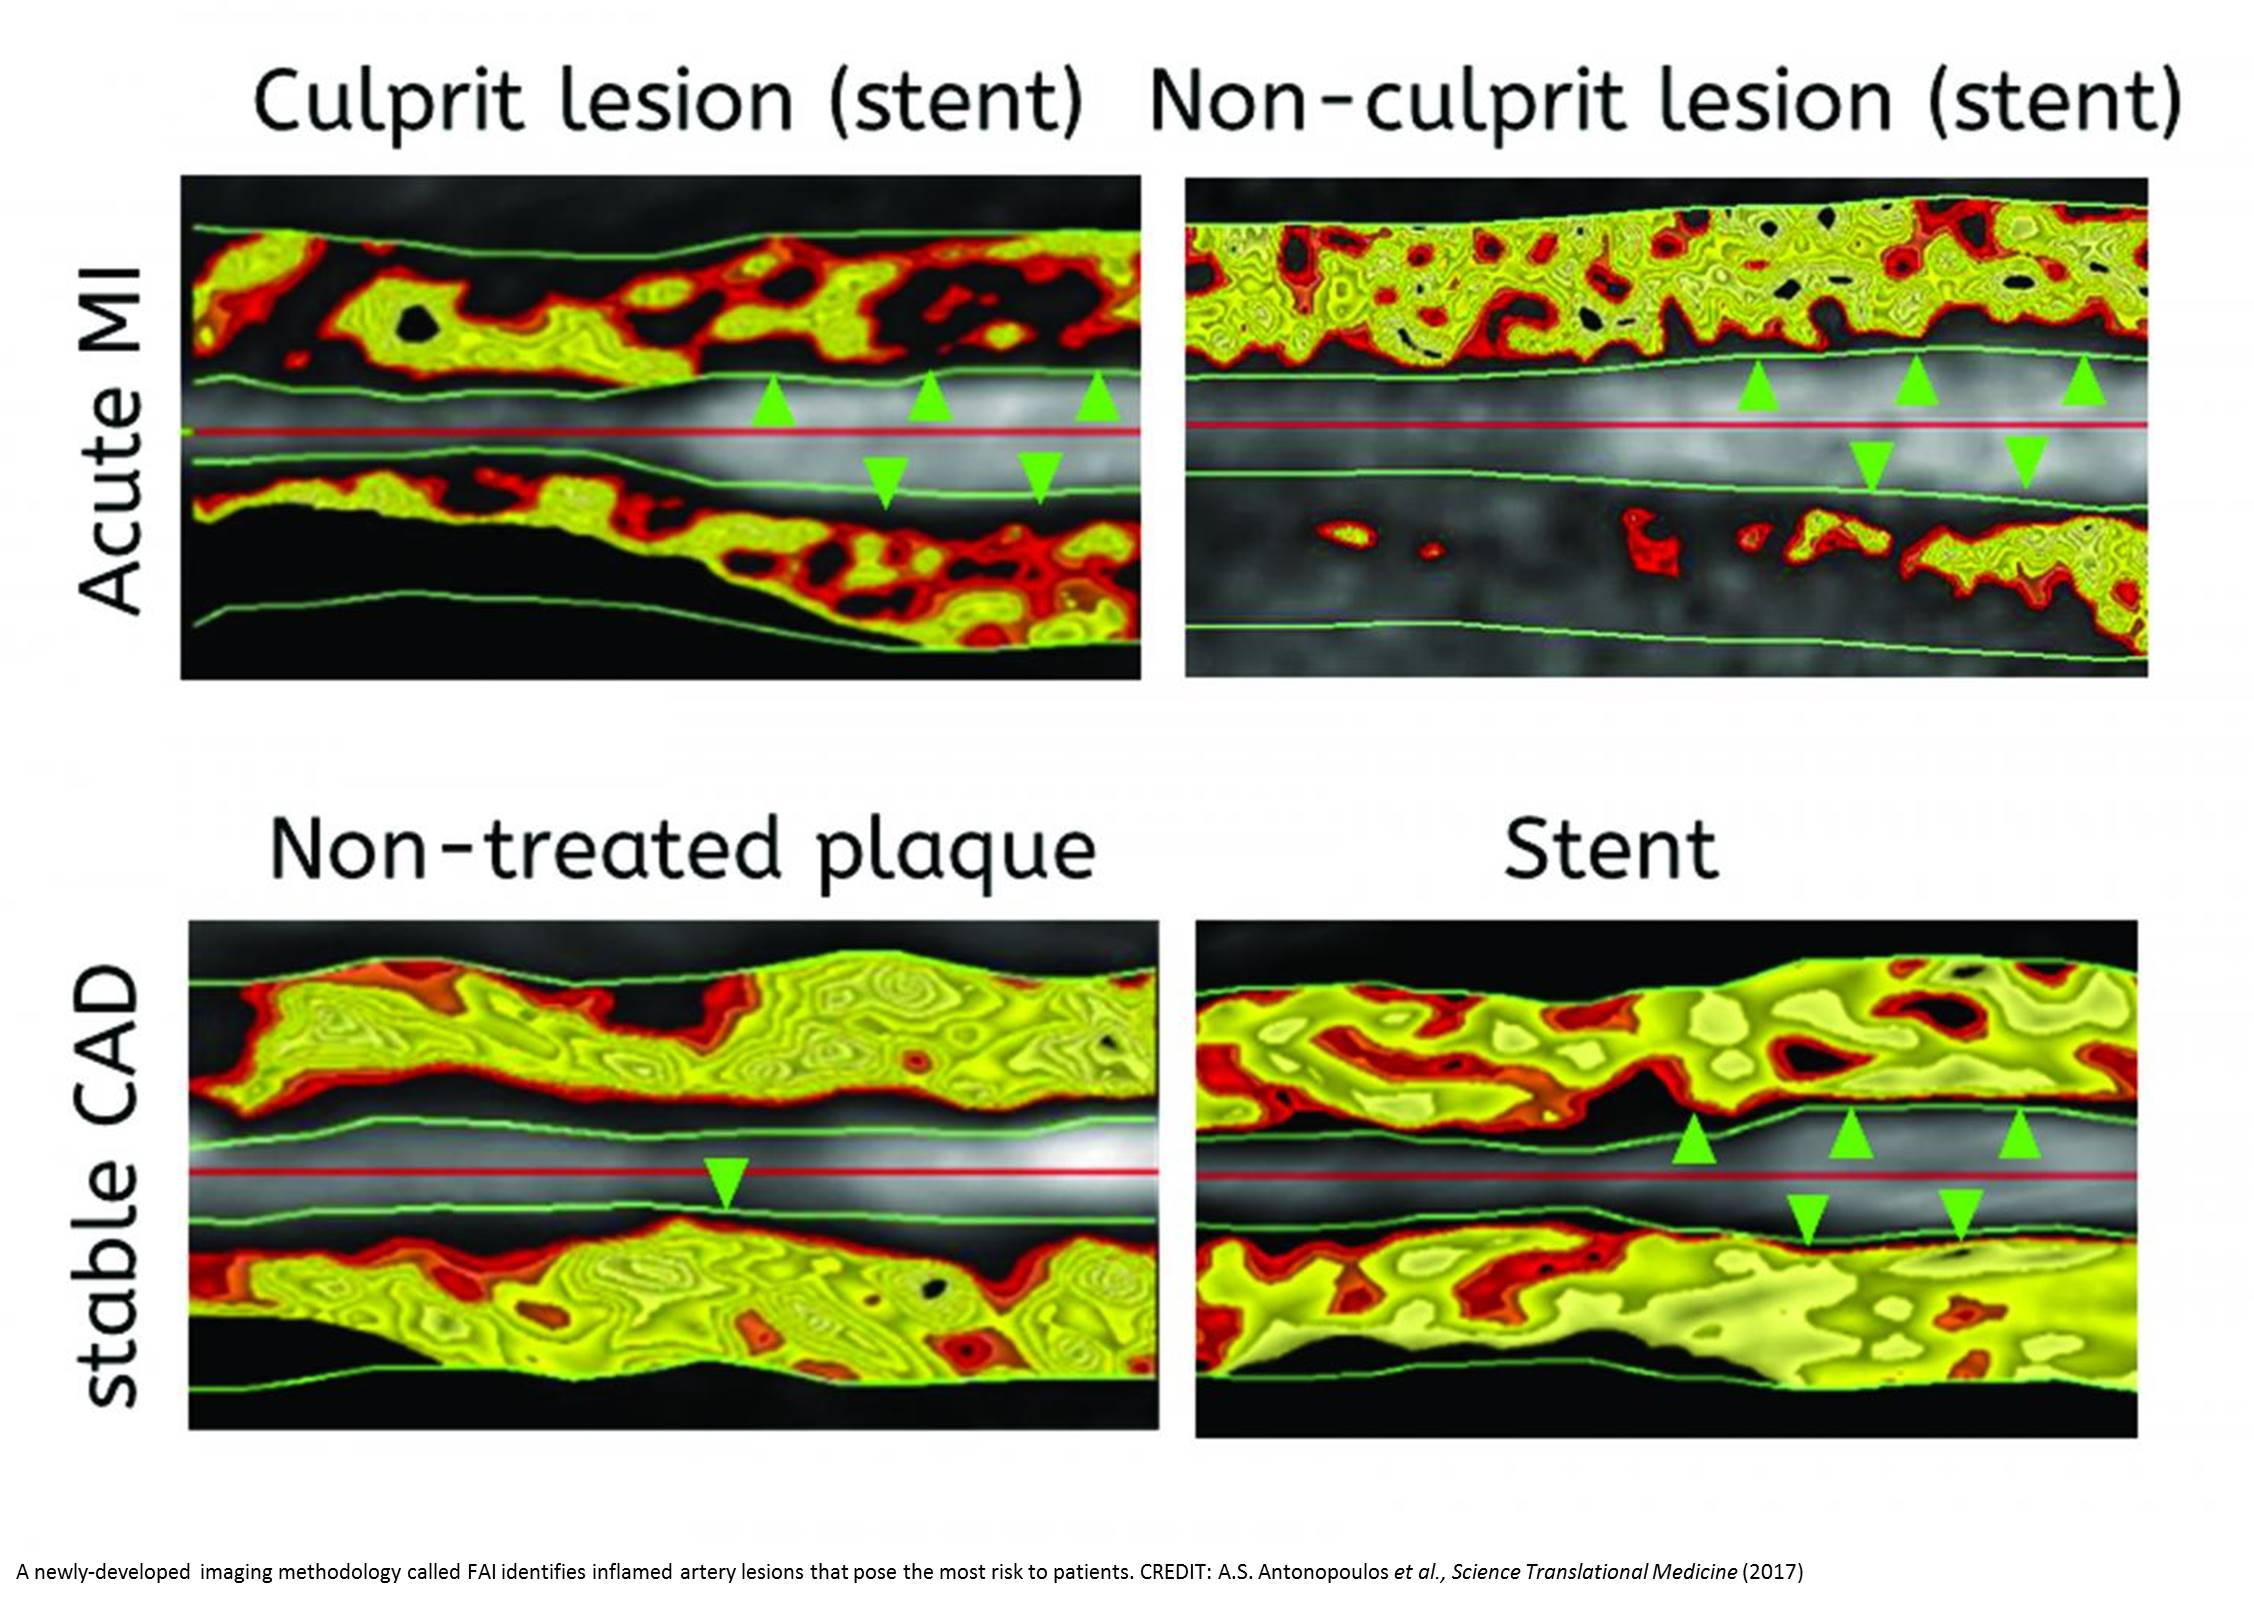 A noninvasive measure to identify dangerous blood vessel plaques